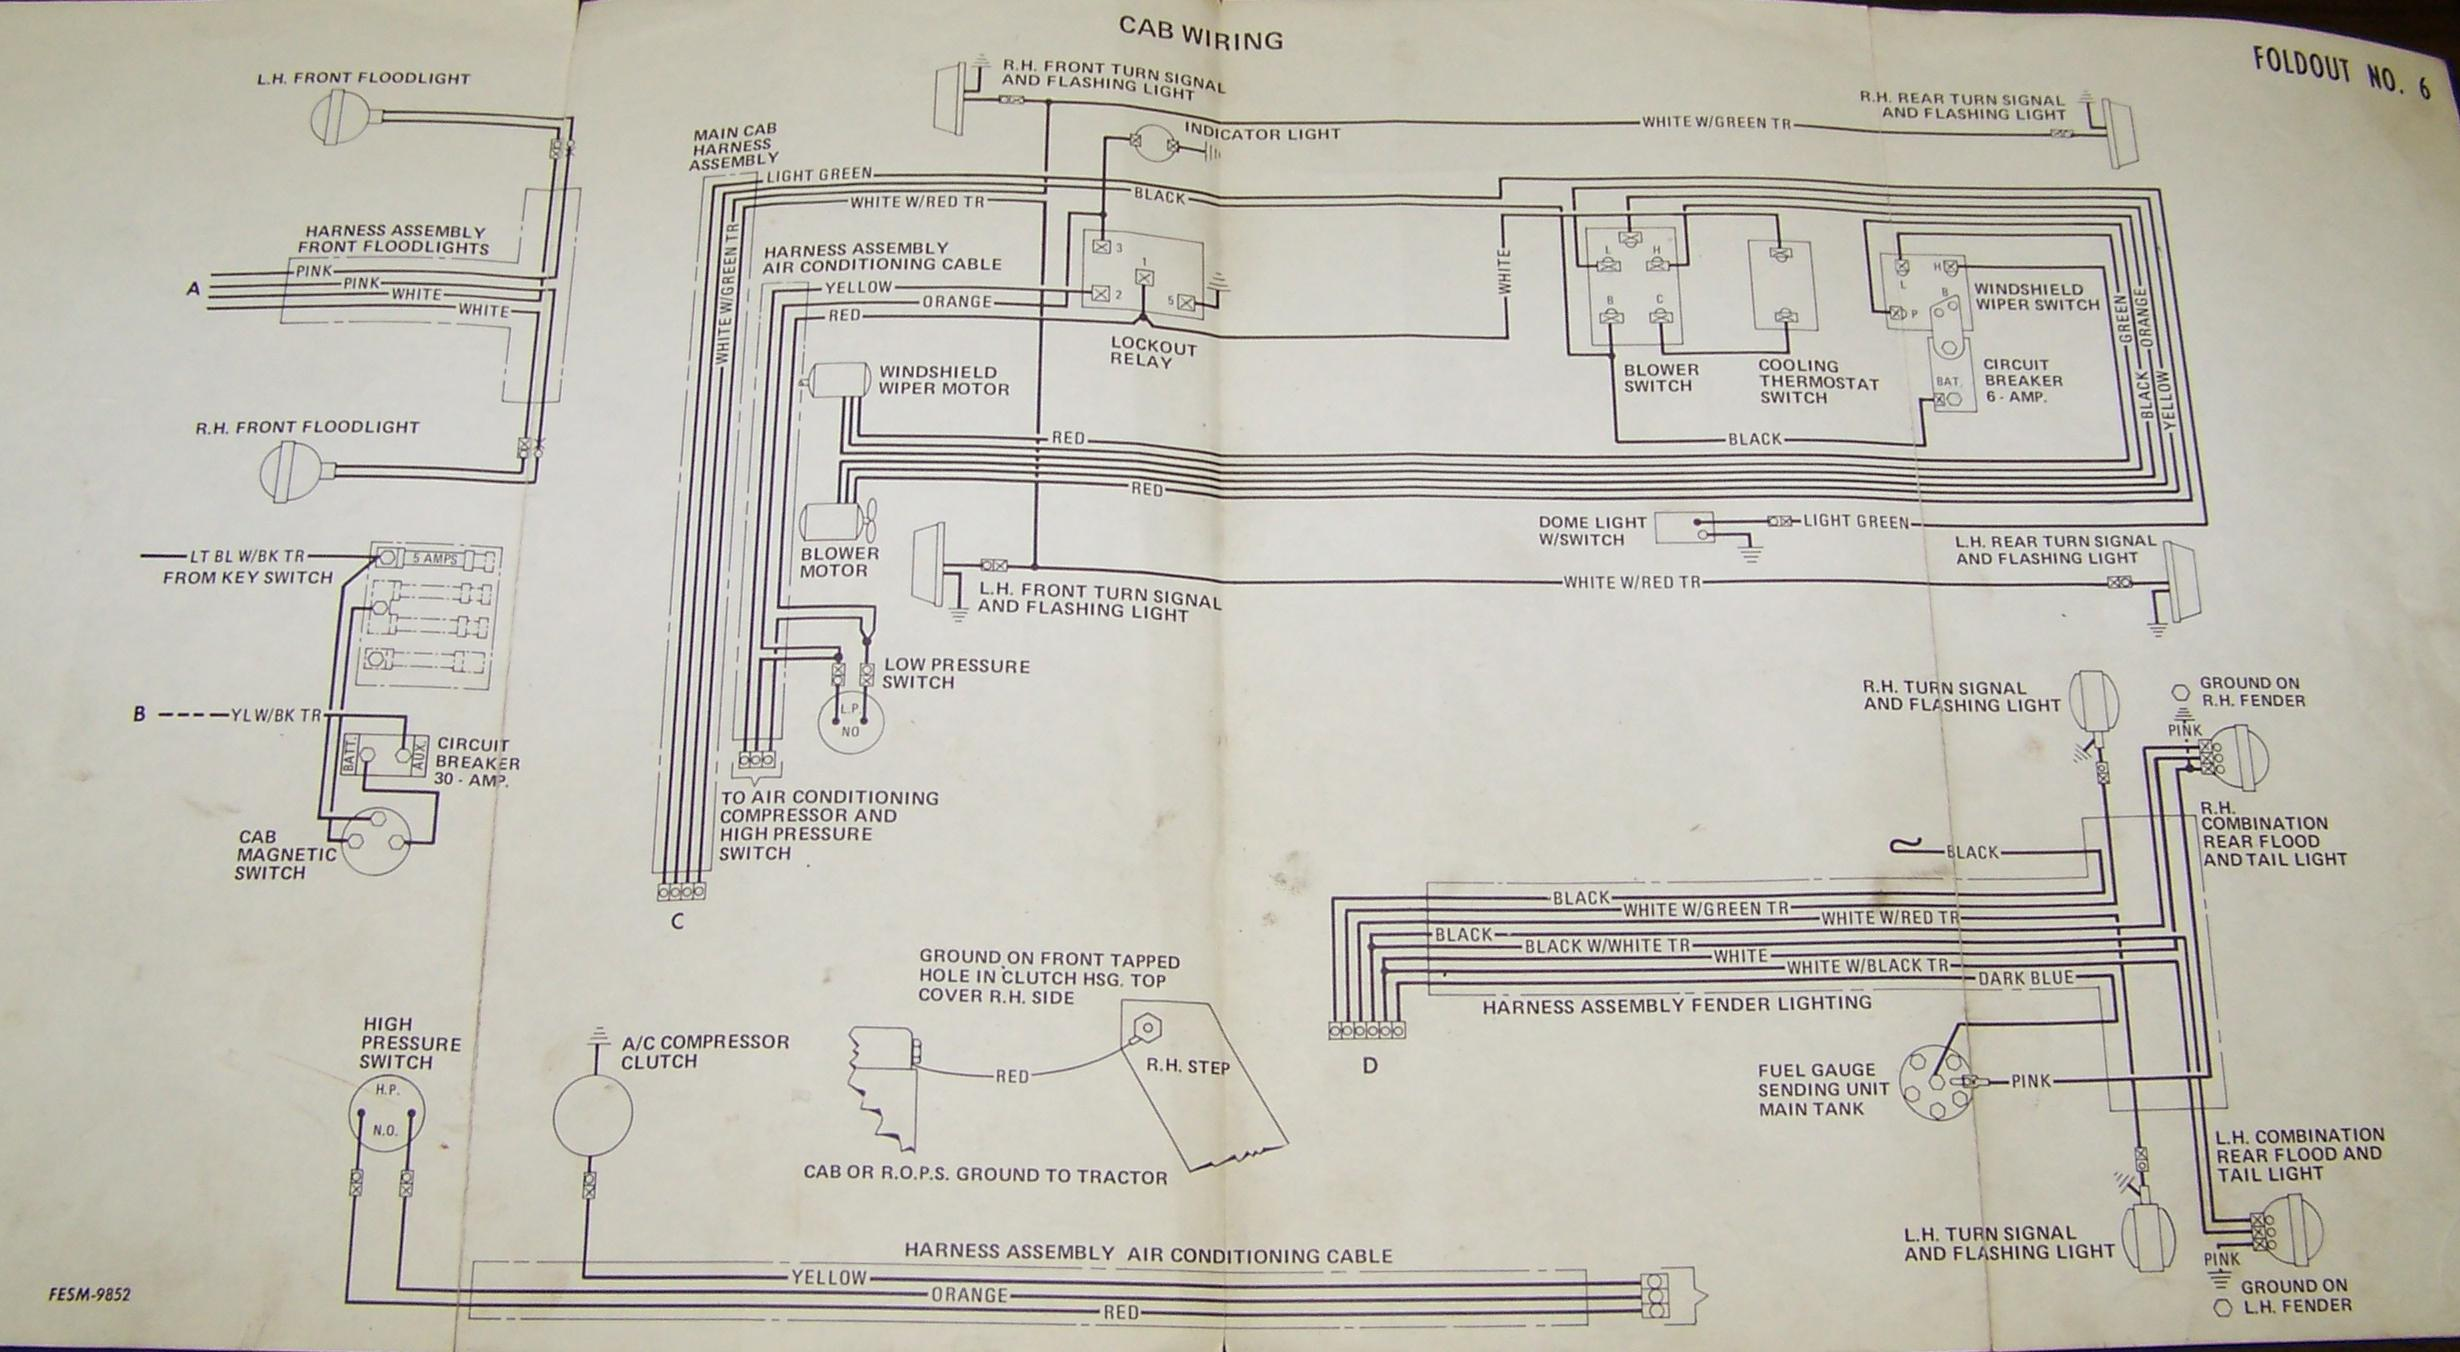 ih 444 tractor wiring diagram 1486 electrical general    ih    red power magazine community  1486 electrical general    ih    red power magazine community